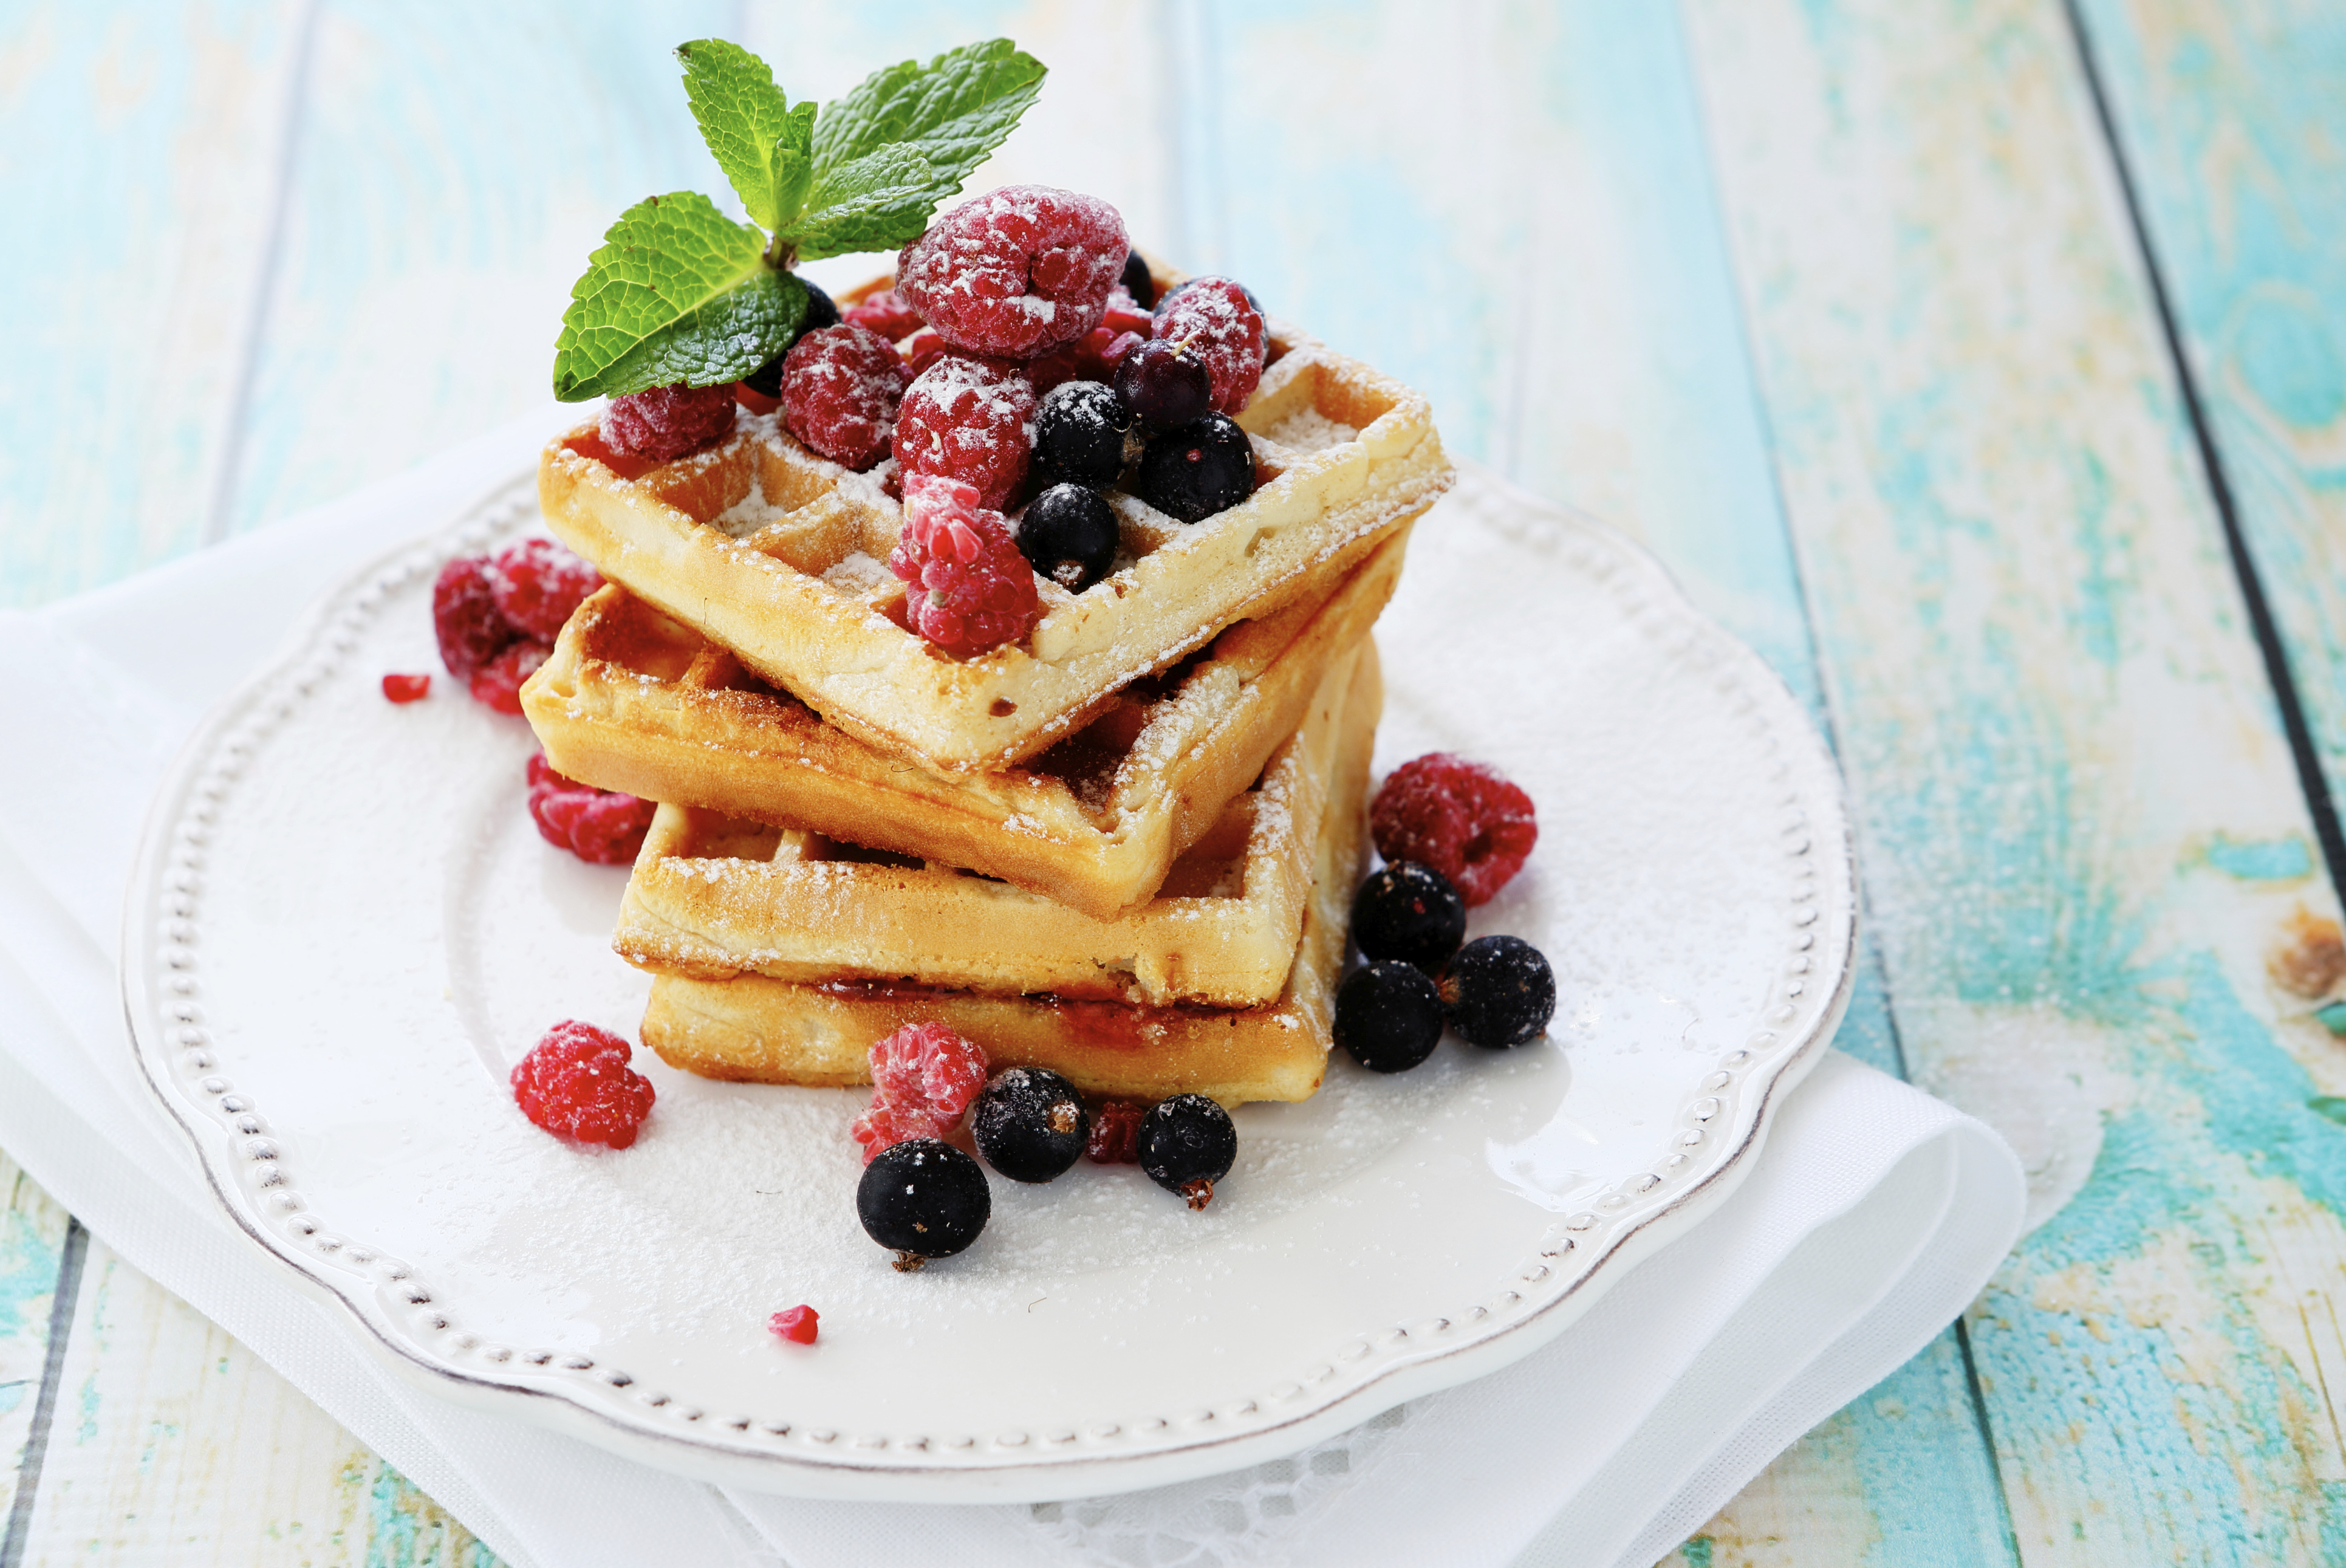 Breakfast waffles with fruit on top